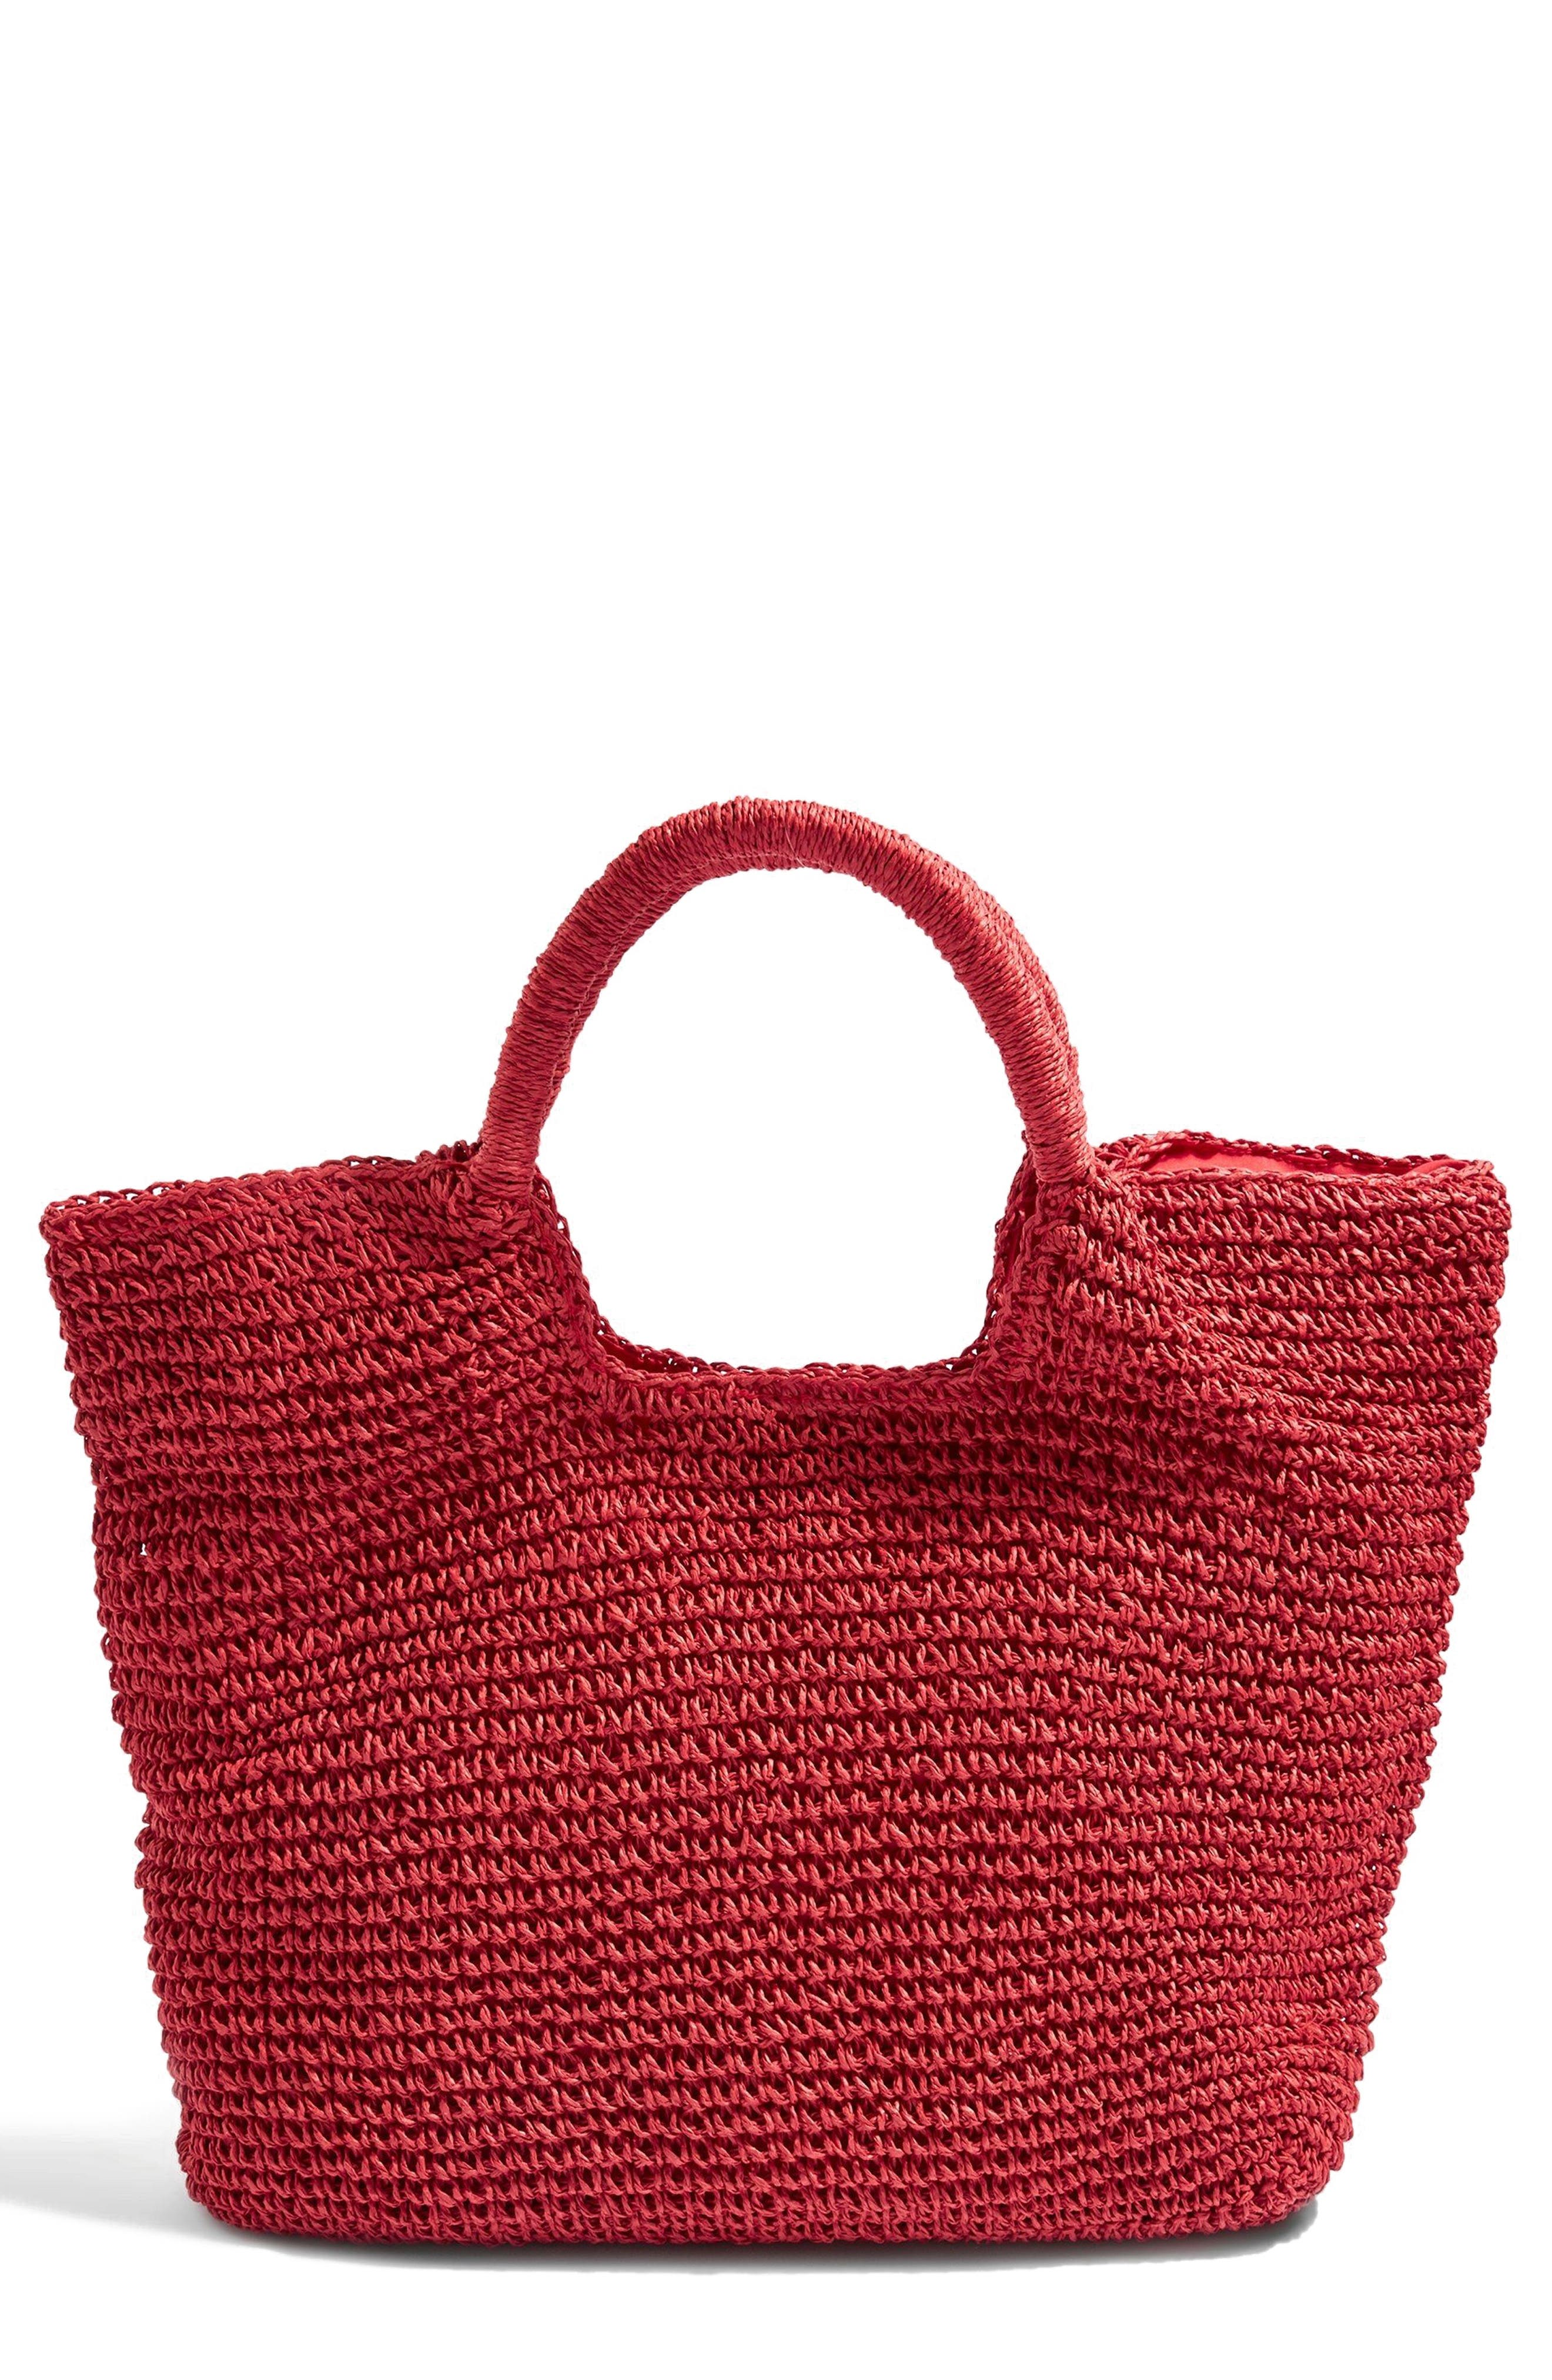 Brighty Straw Tote Bag,                         Main,                         color,